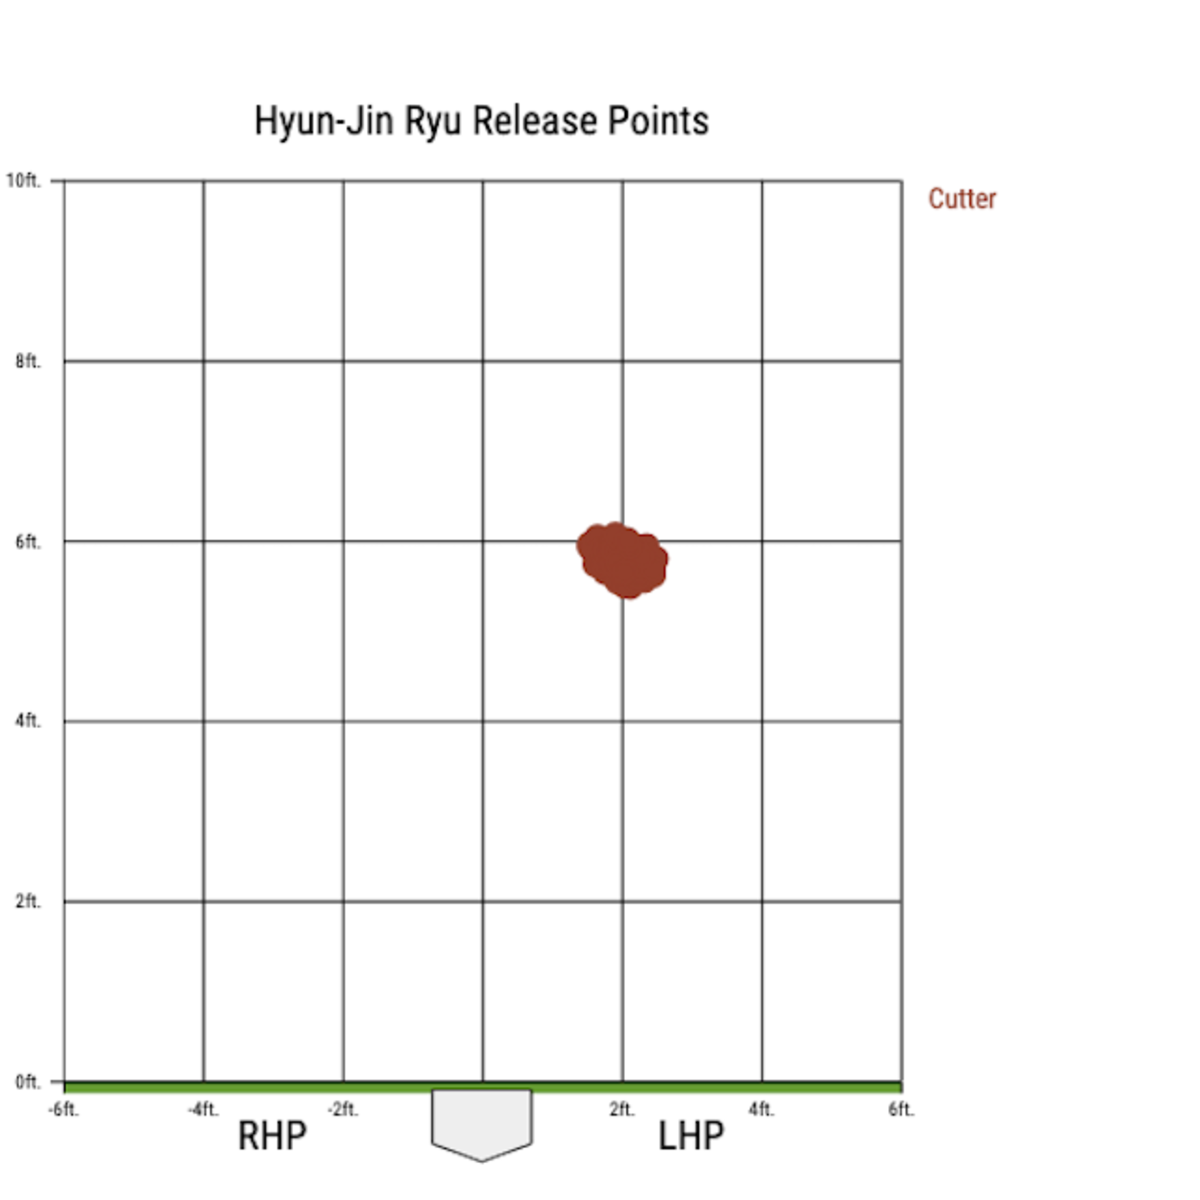 ryu2018releasepoints.png